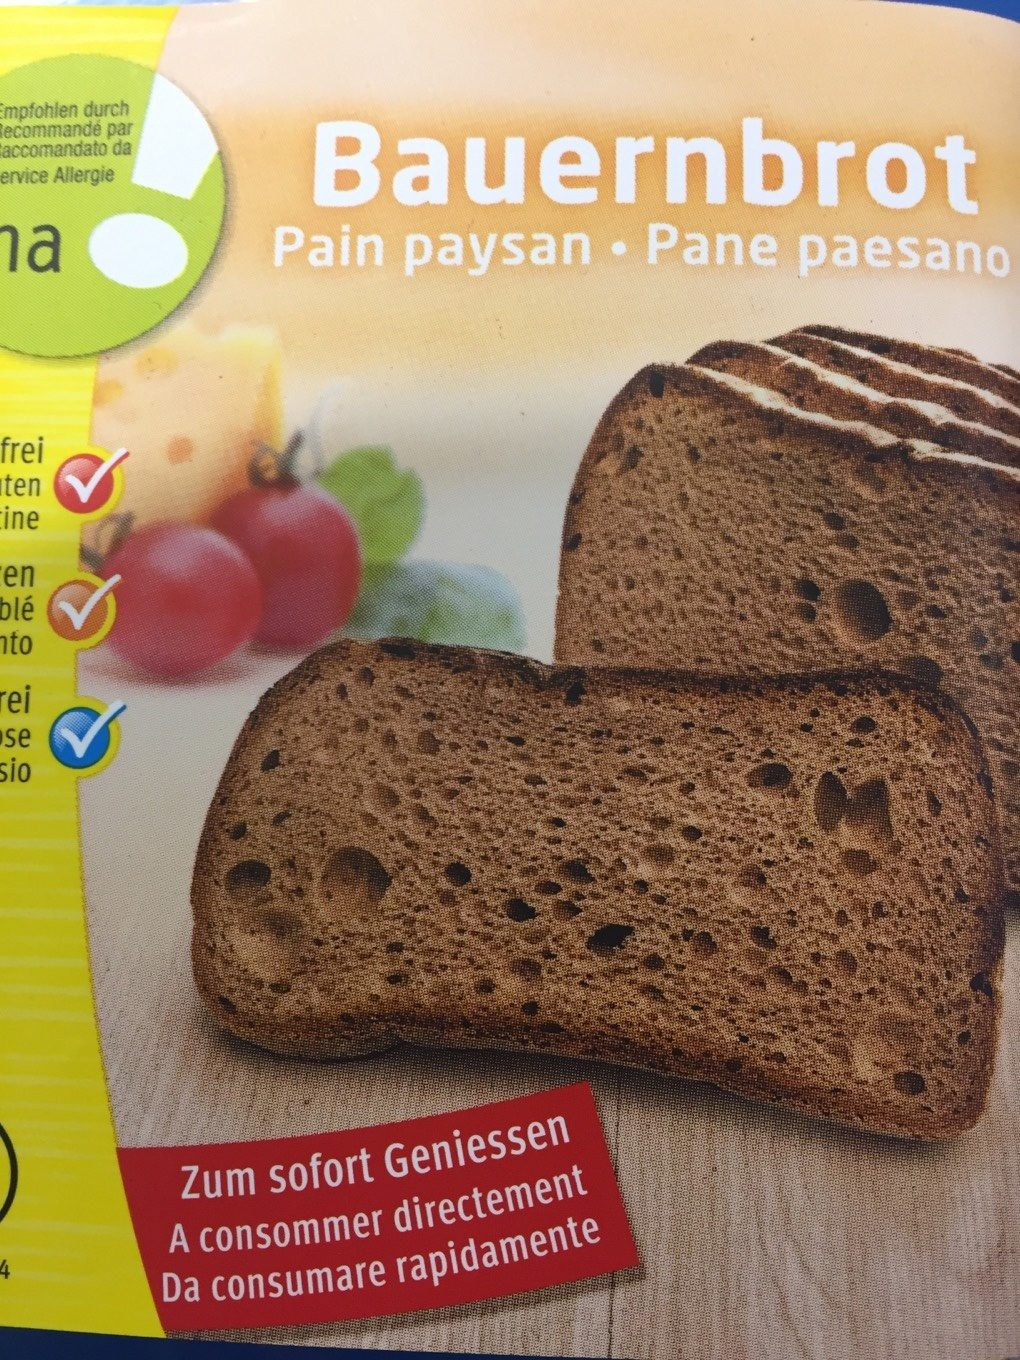 Bauernbrot - Product - fr